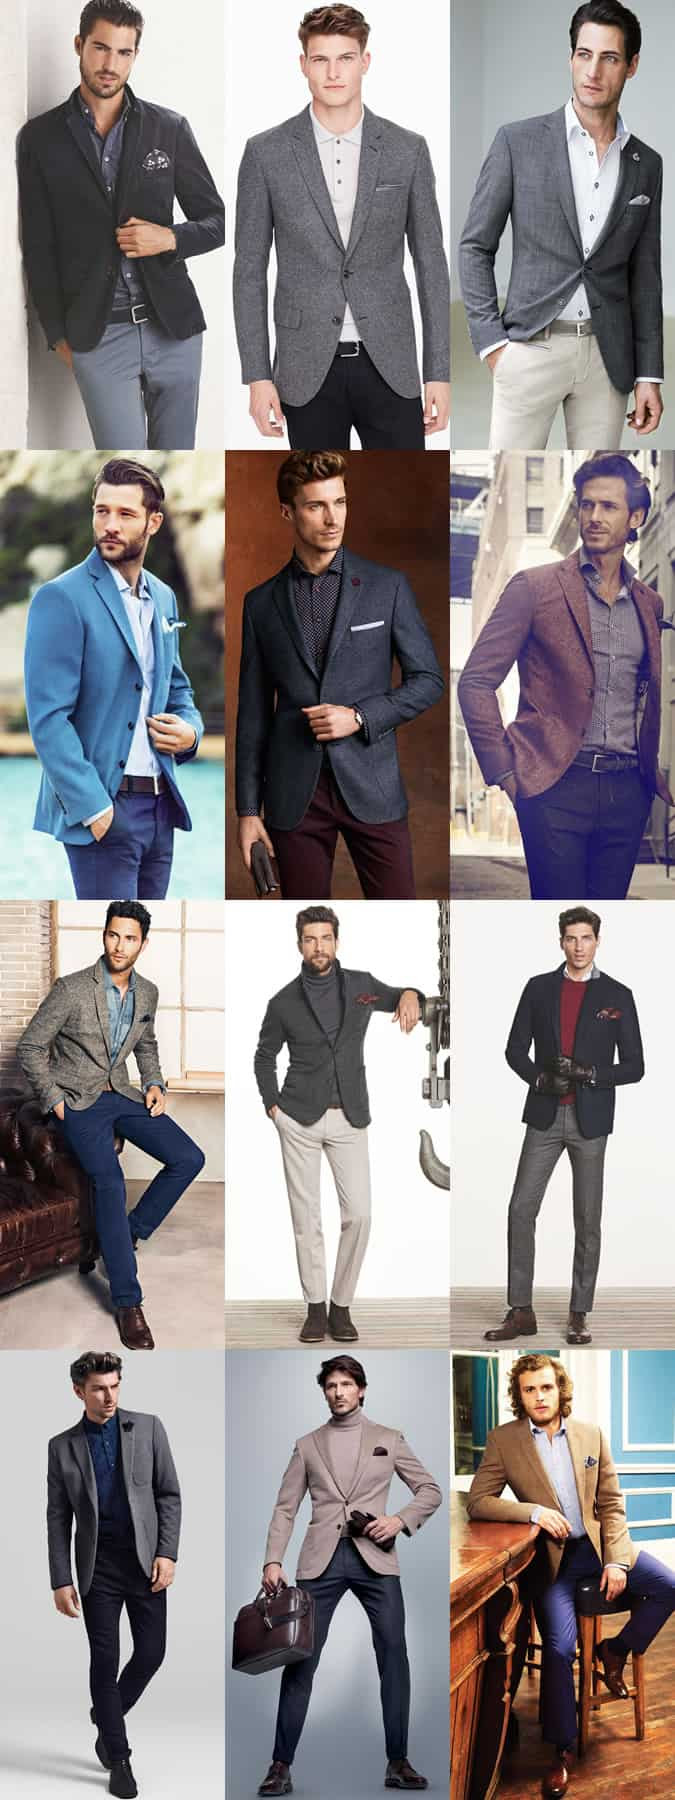 Men's Date Outfit Inspiration Lookbook - Tailored Separates - The Fancy Restaurant Date